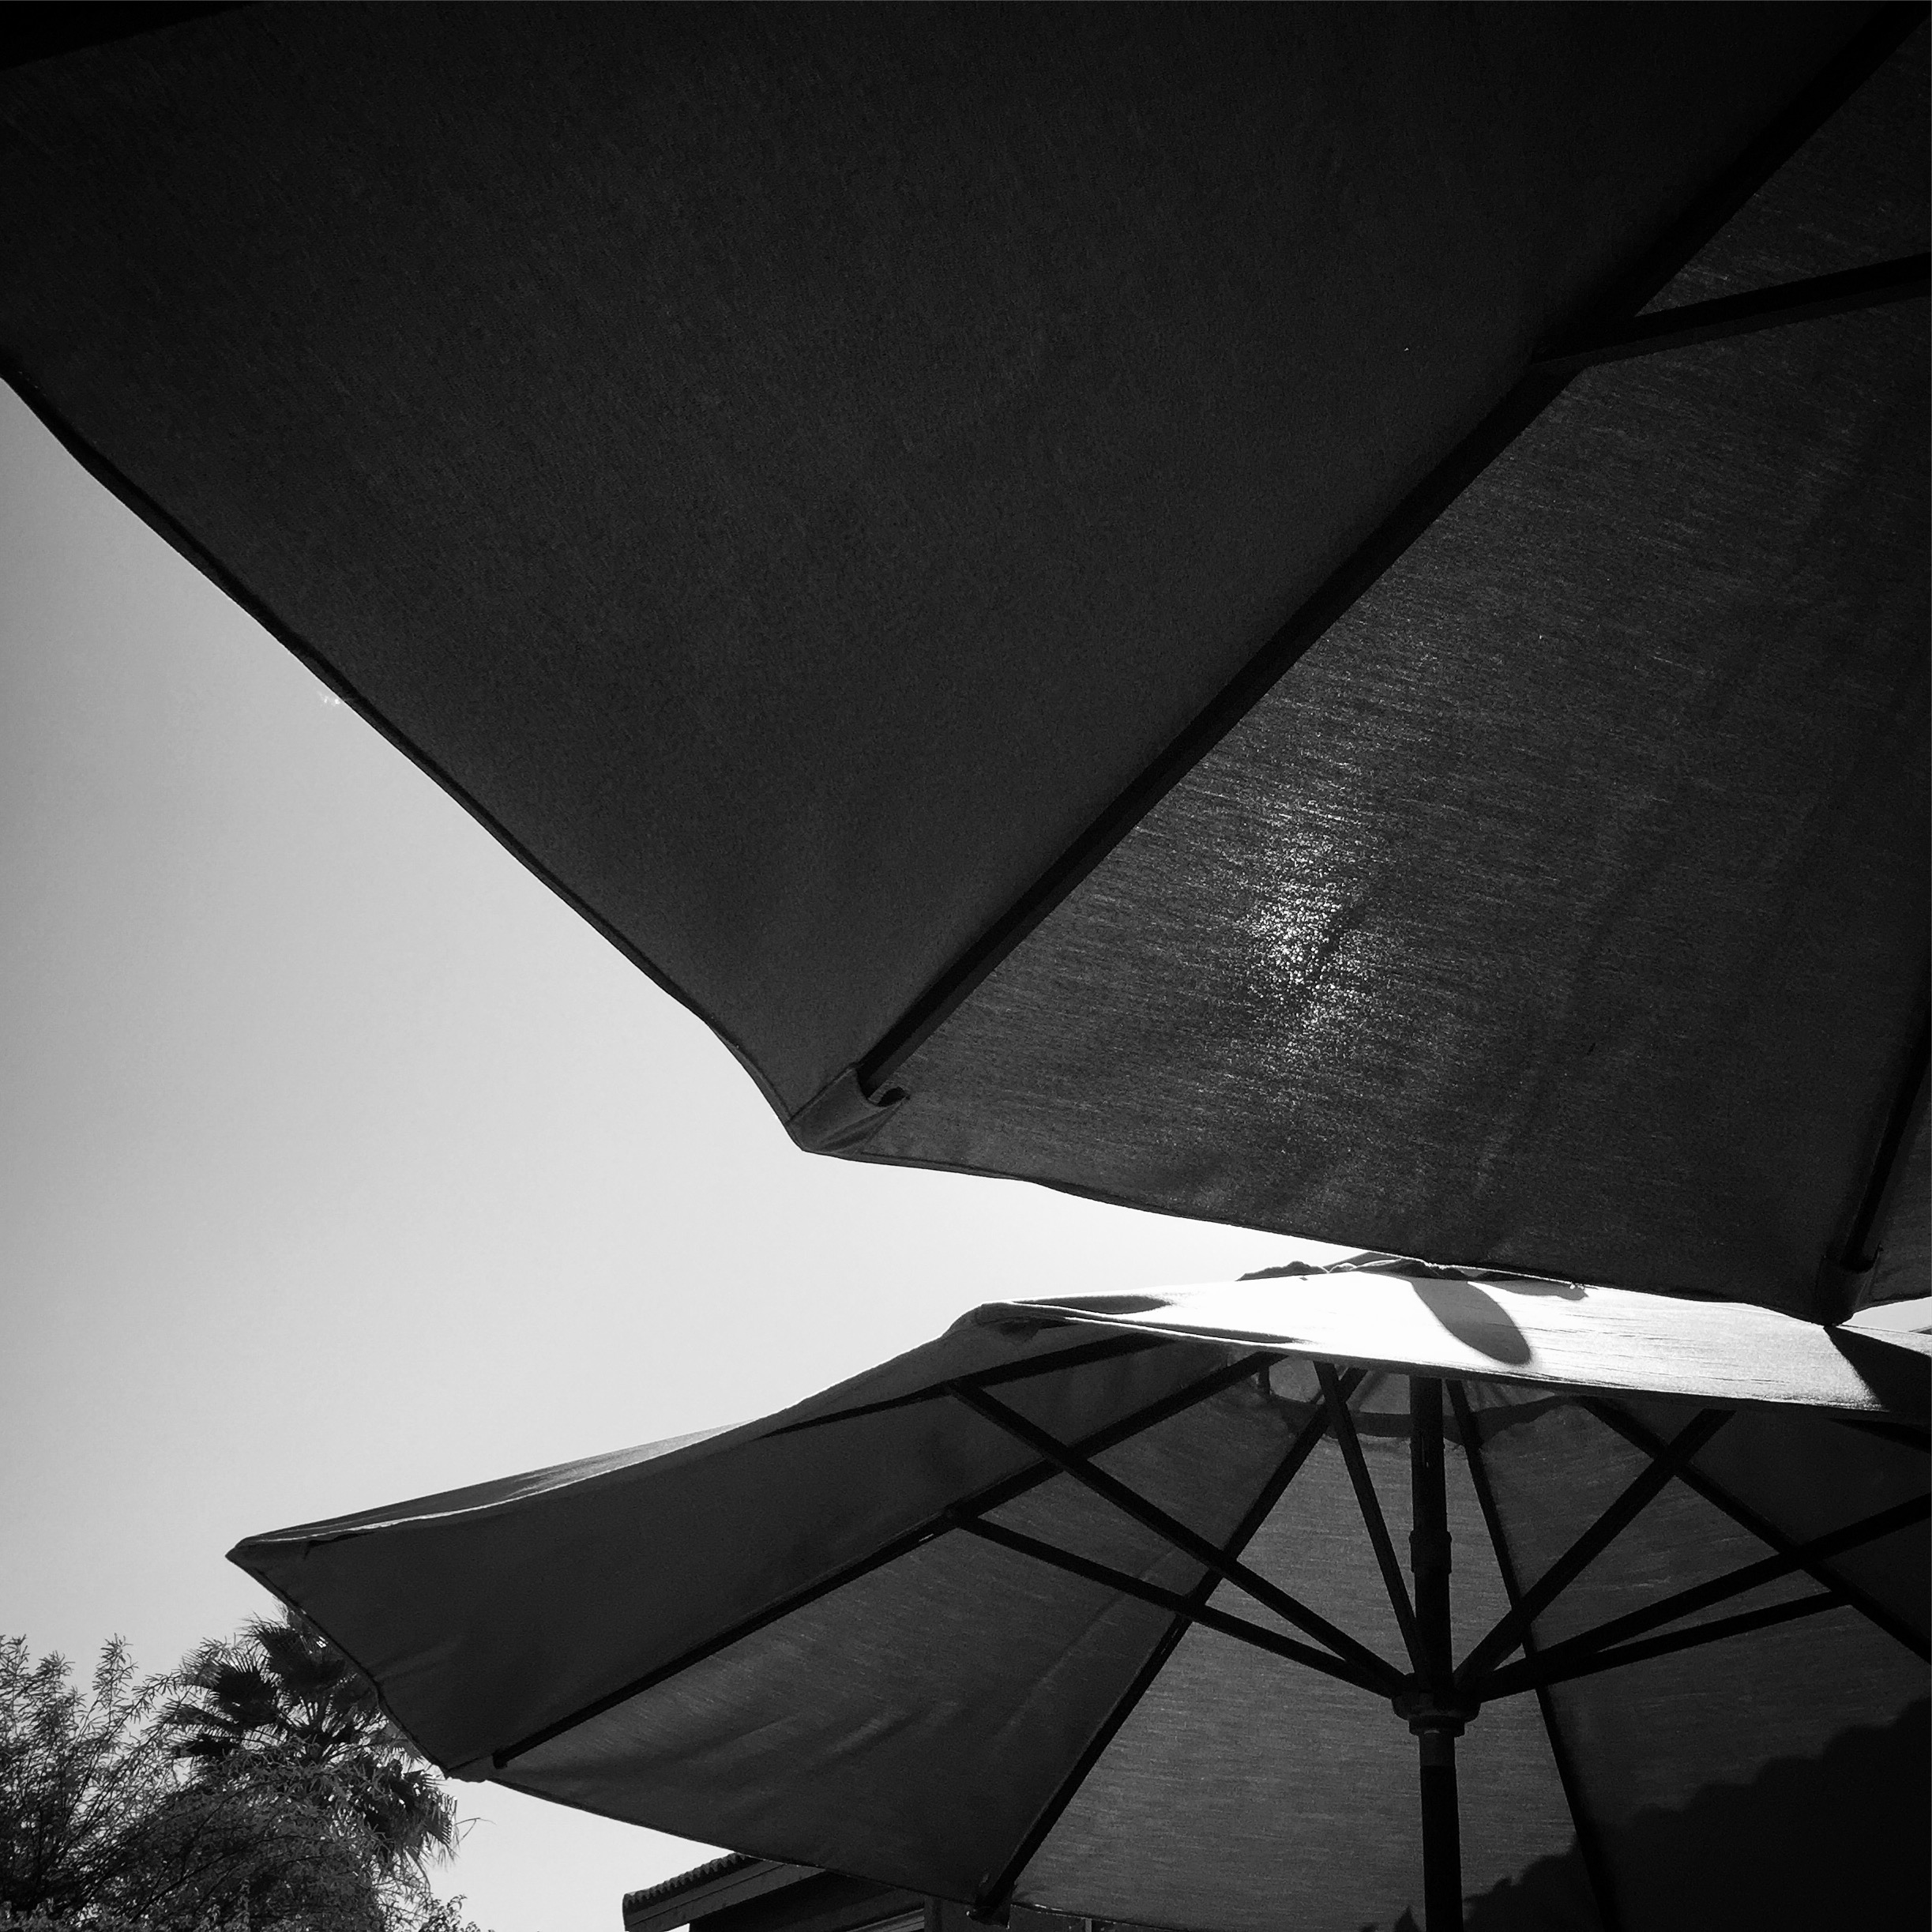 Umbrella Abstract, Palm Springs, CA [Photo]